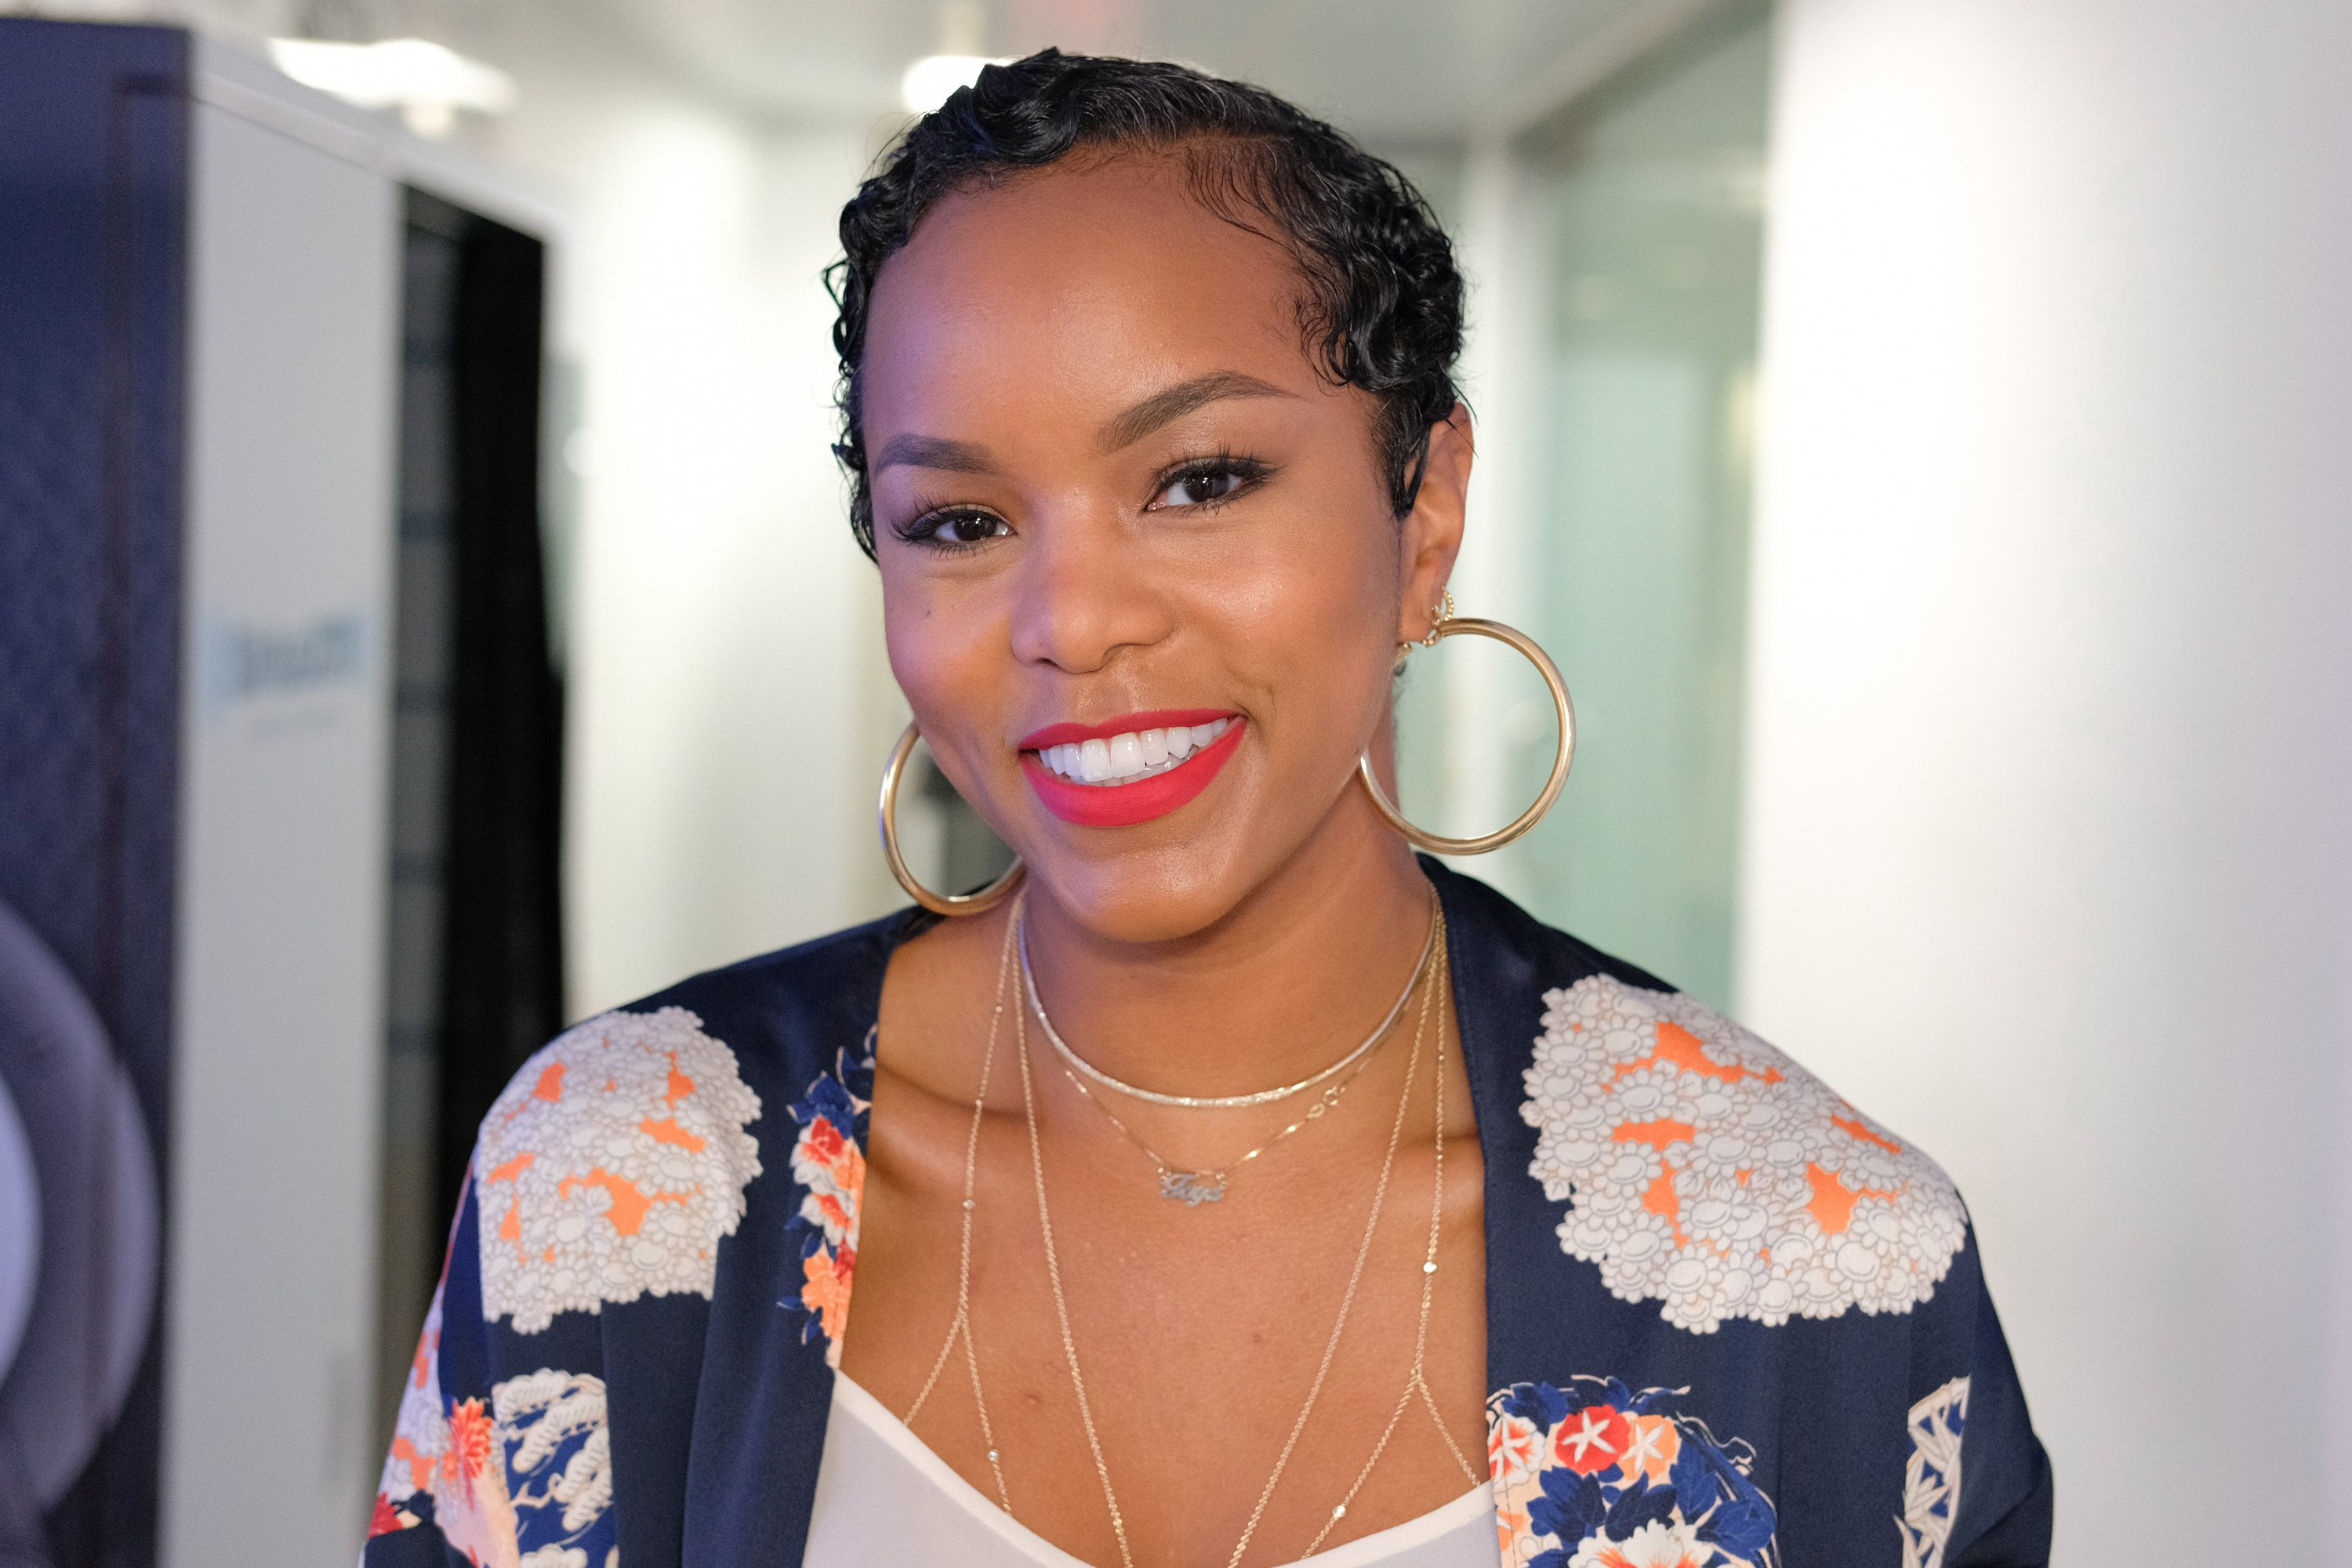 LeToya Luckett at the SiriusXM Studios on April 19, 2017 in New York City.   Source: Getty Images